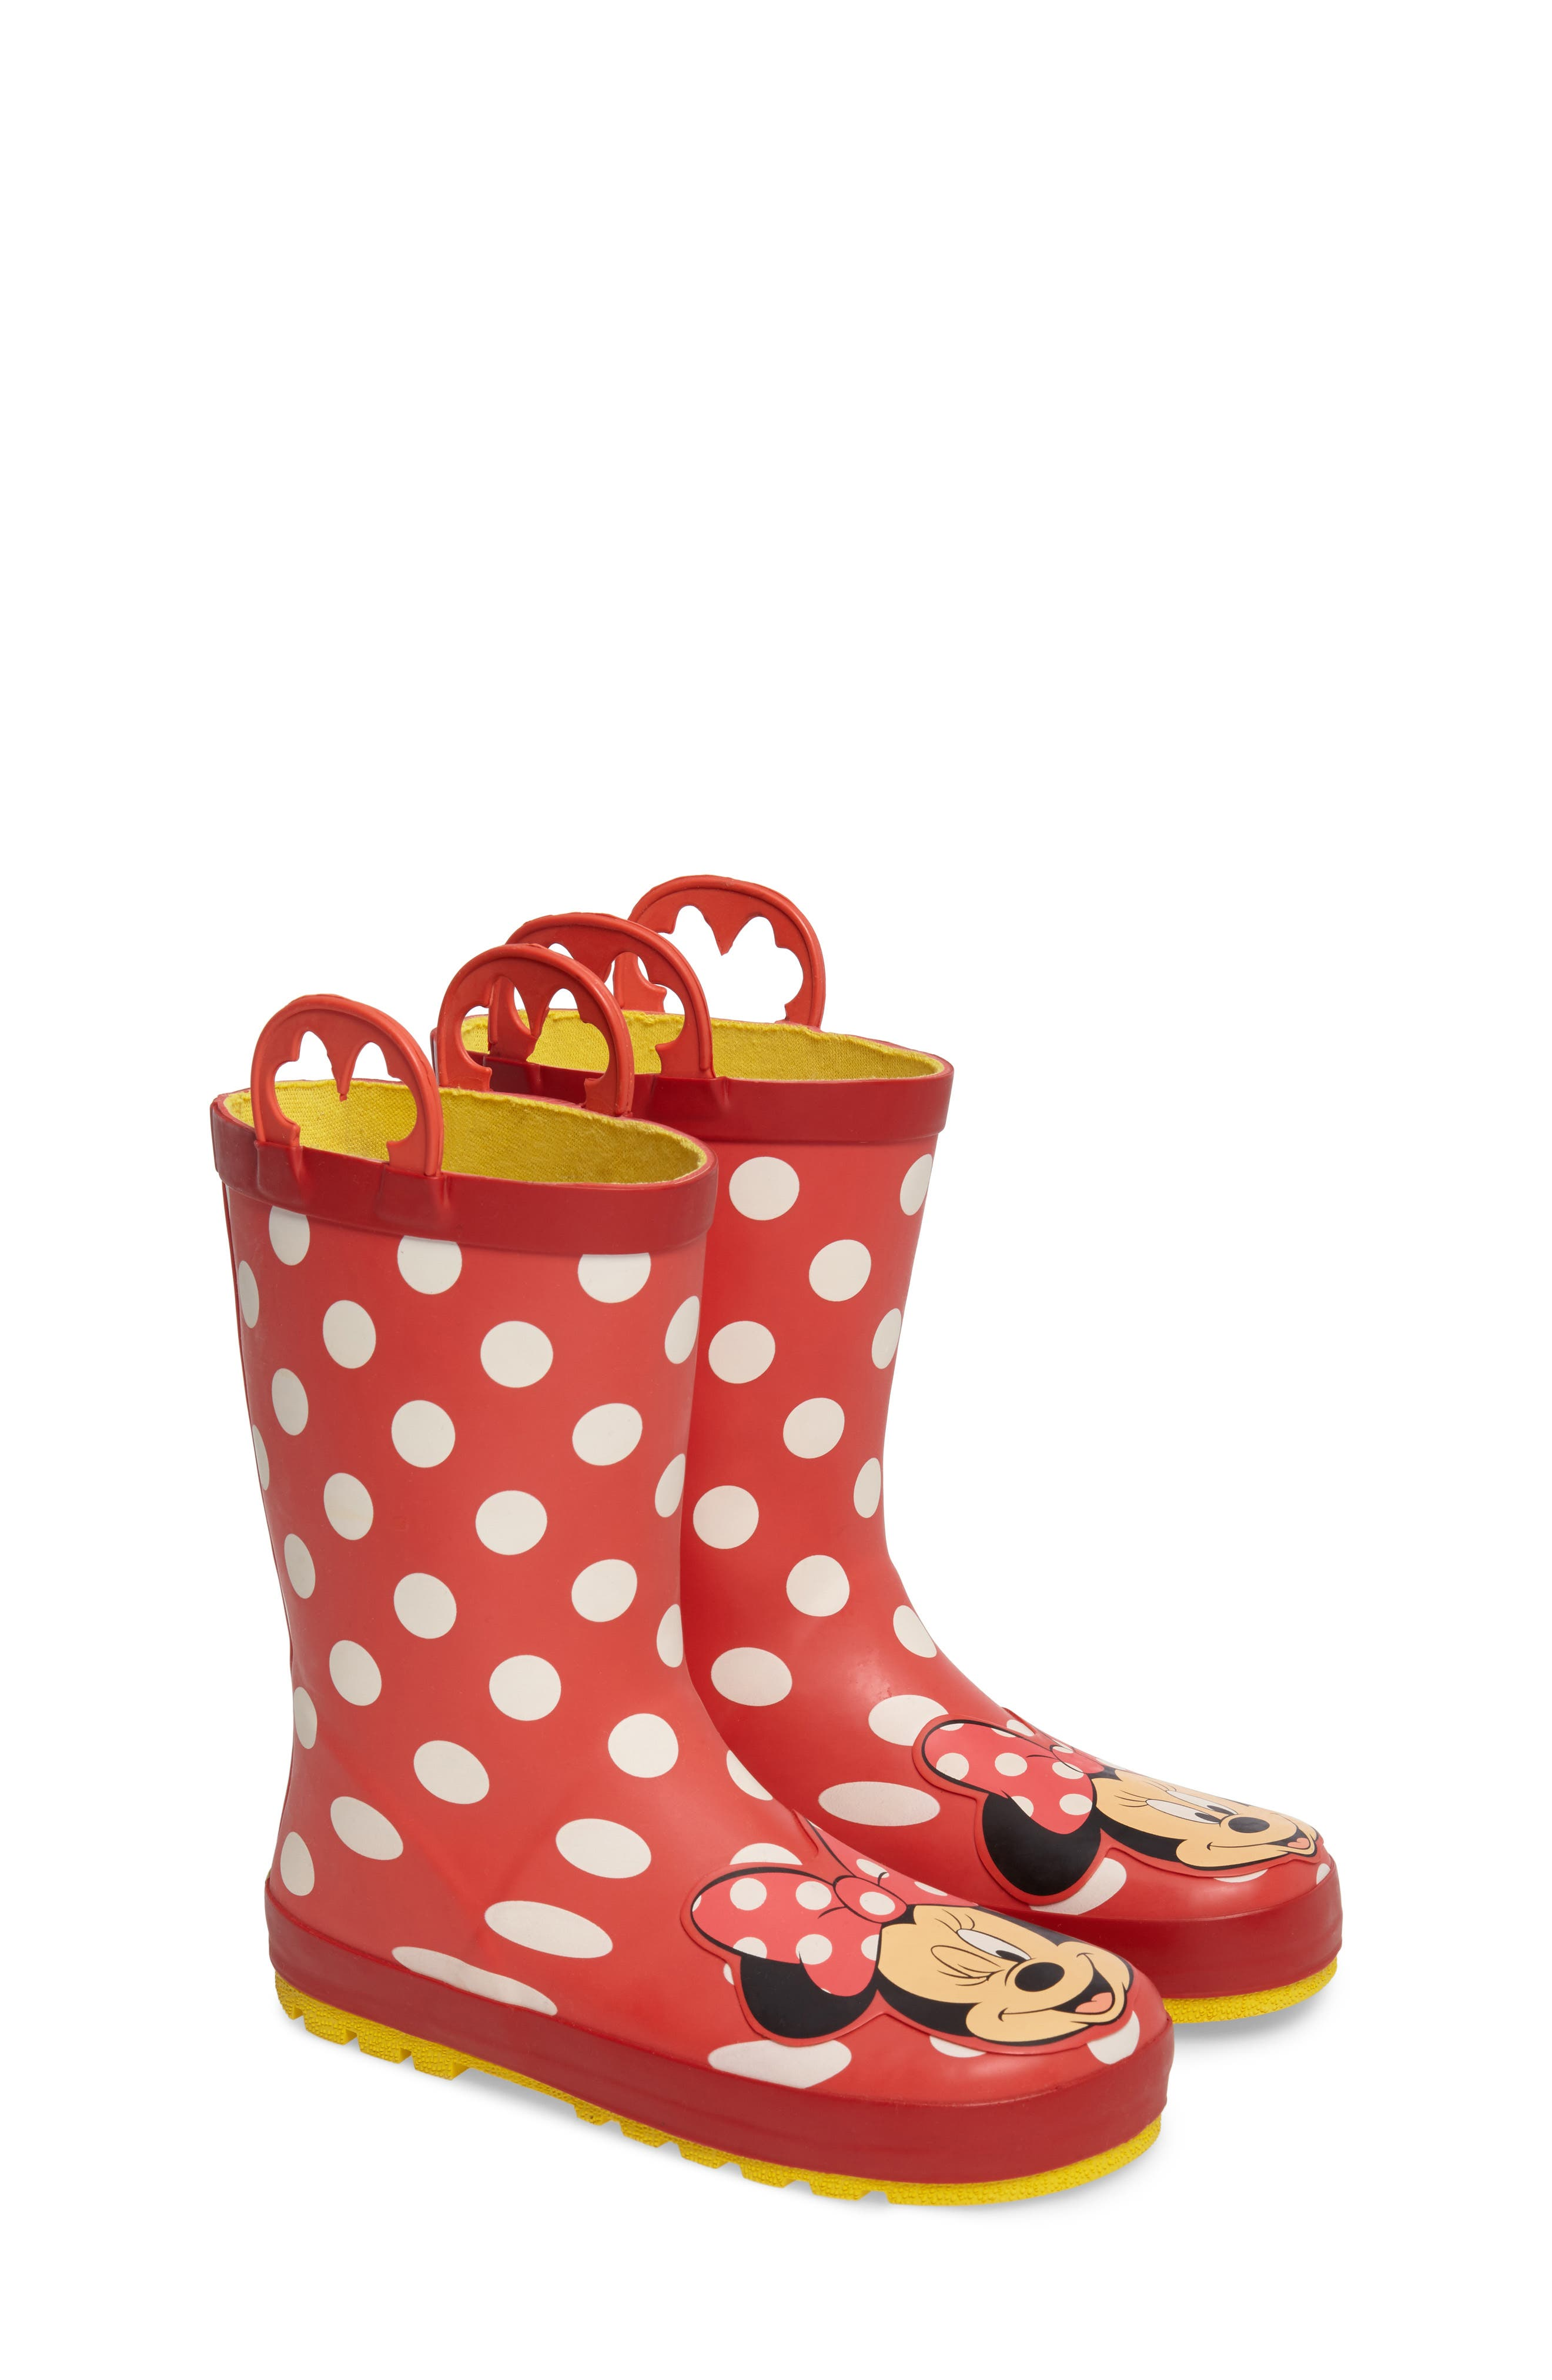 Alternate Image 1 Selected - Western Chief Minnie Mouse Rain Boot (Walker, Toddler, Little Kid & Big Kid)